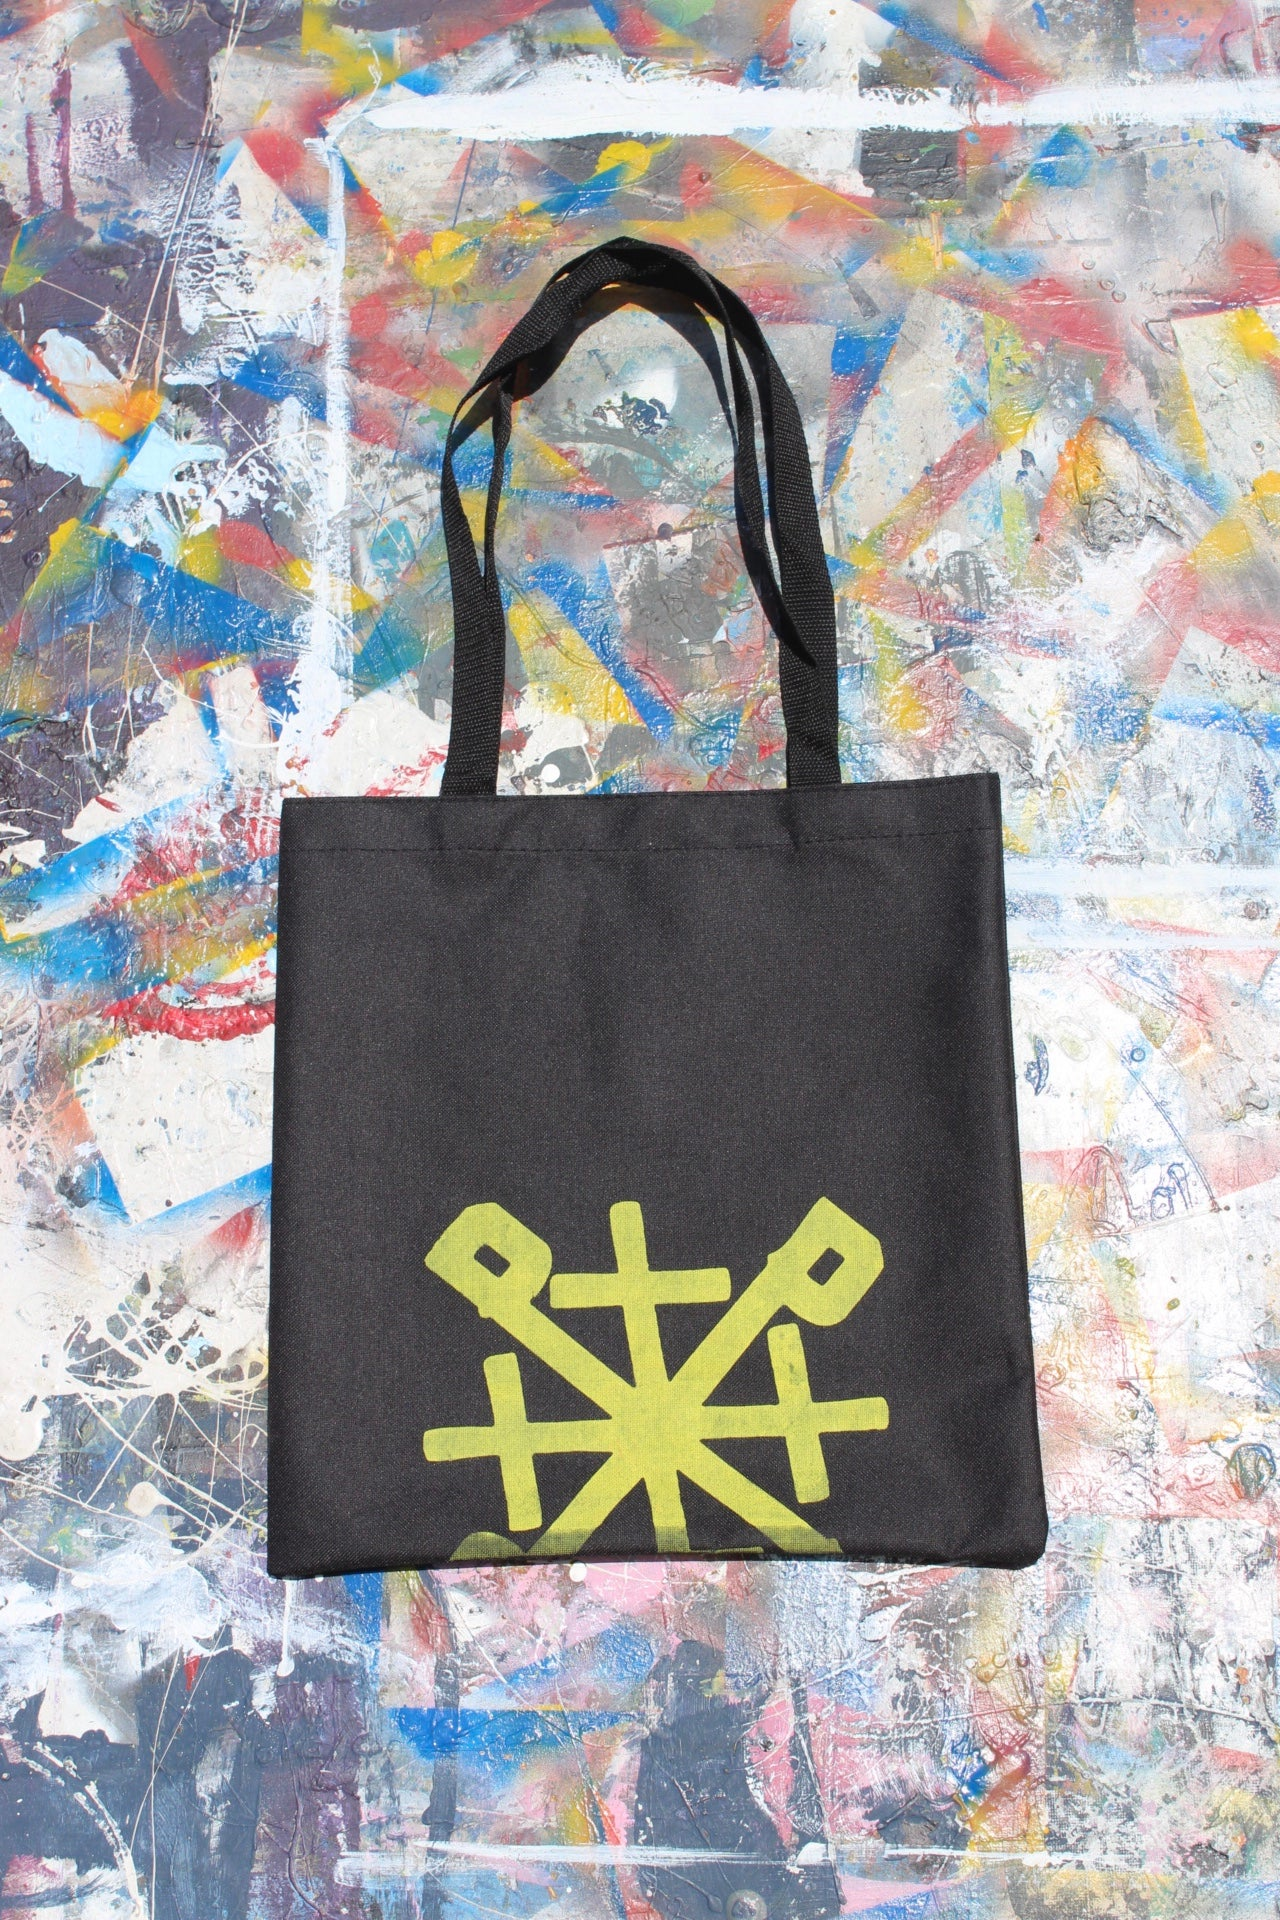 Image of bag up tote bag in black